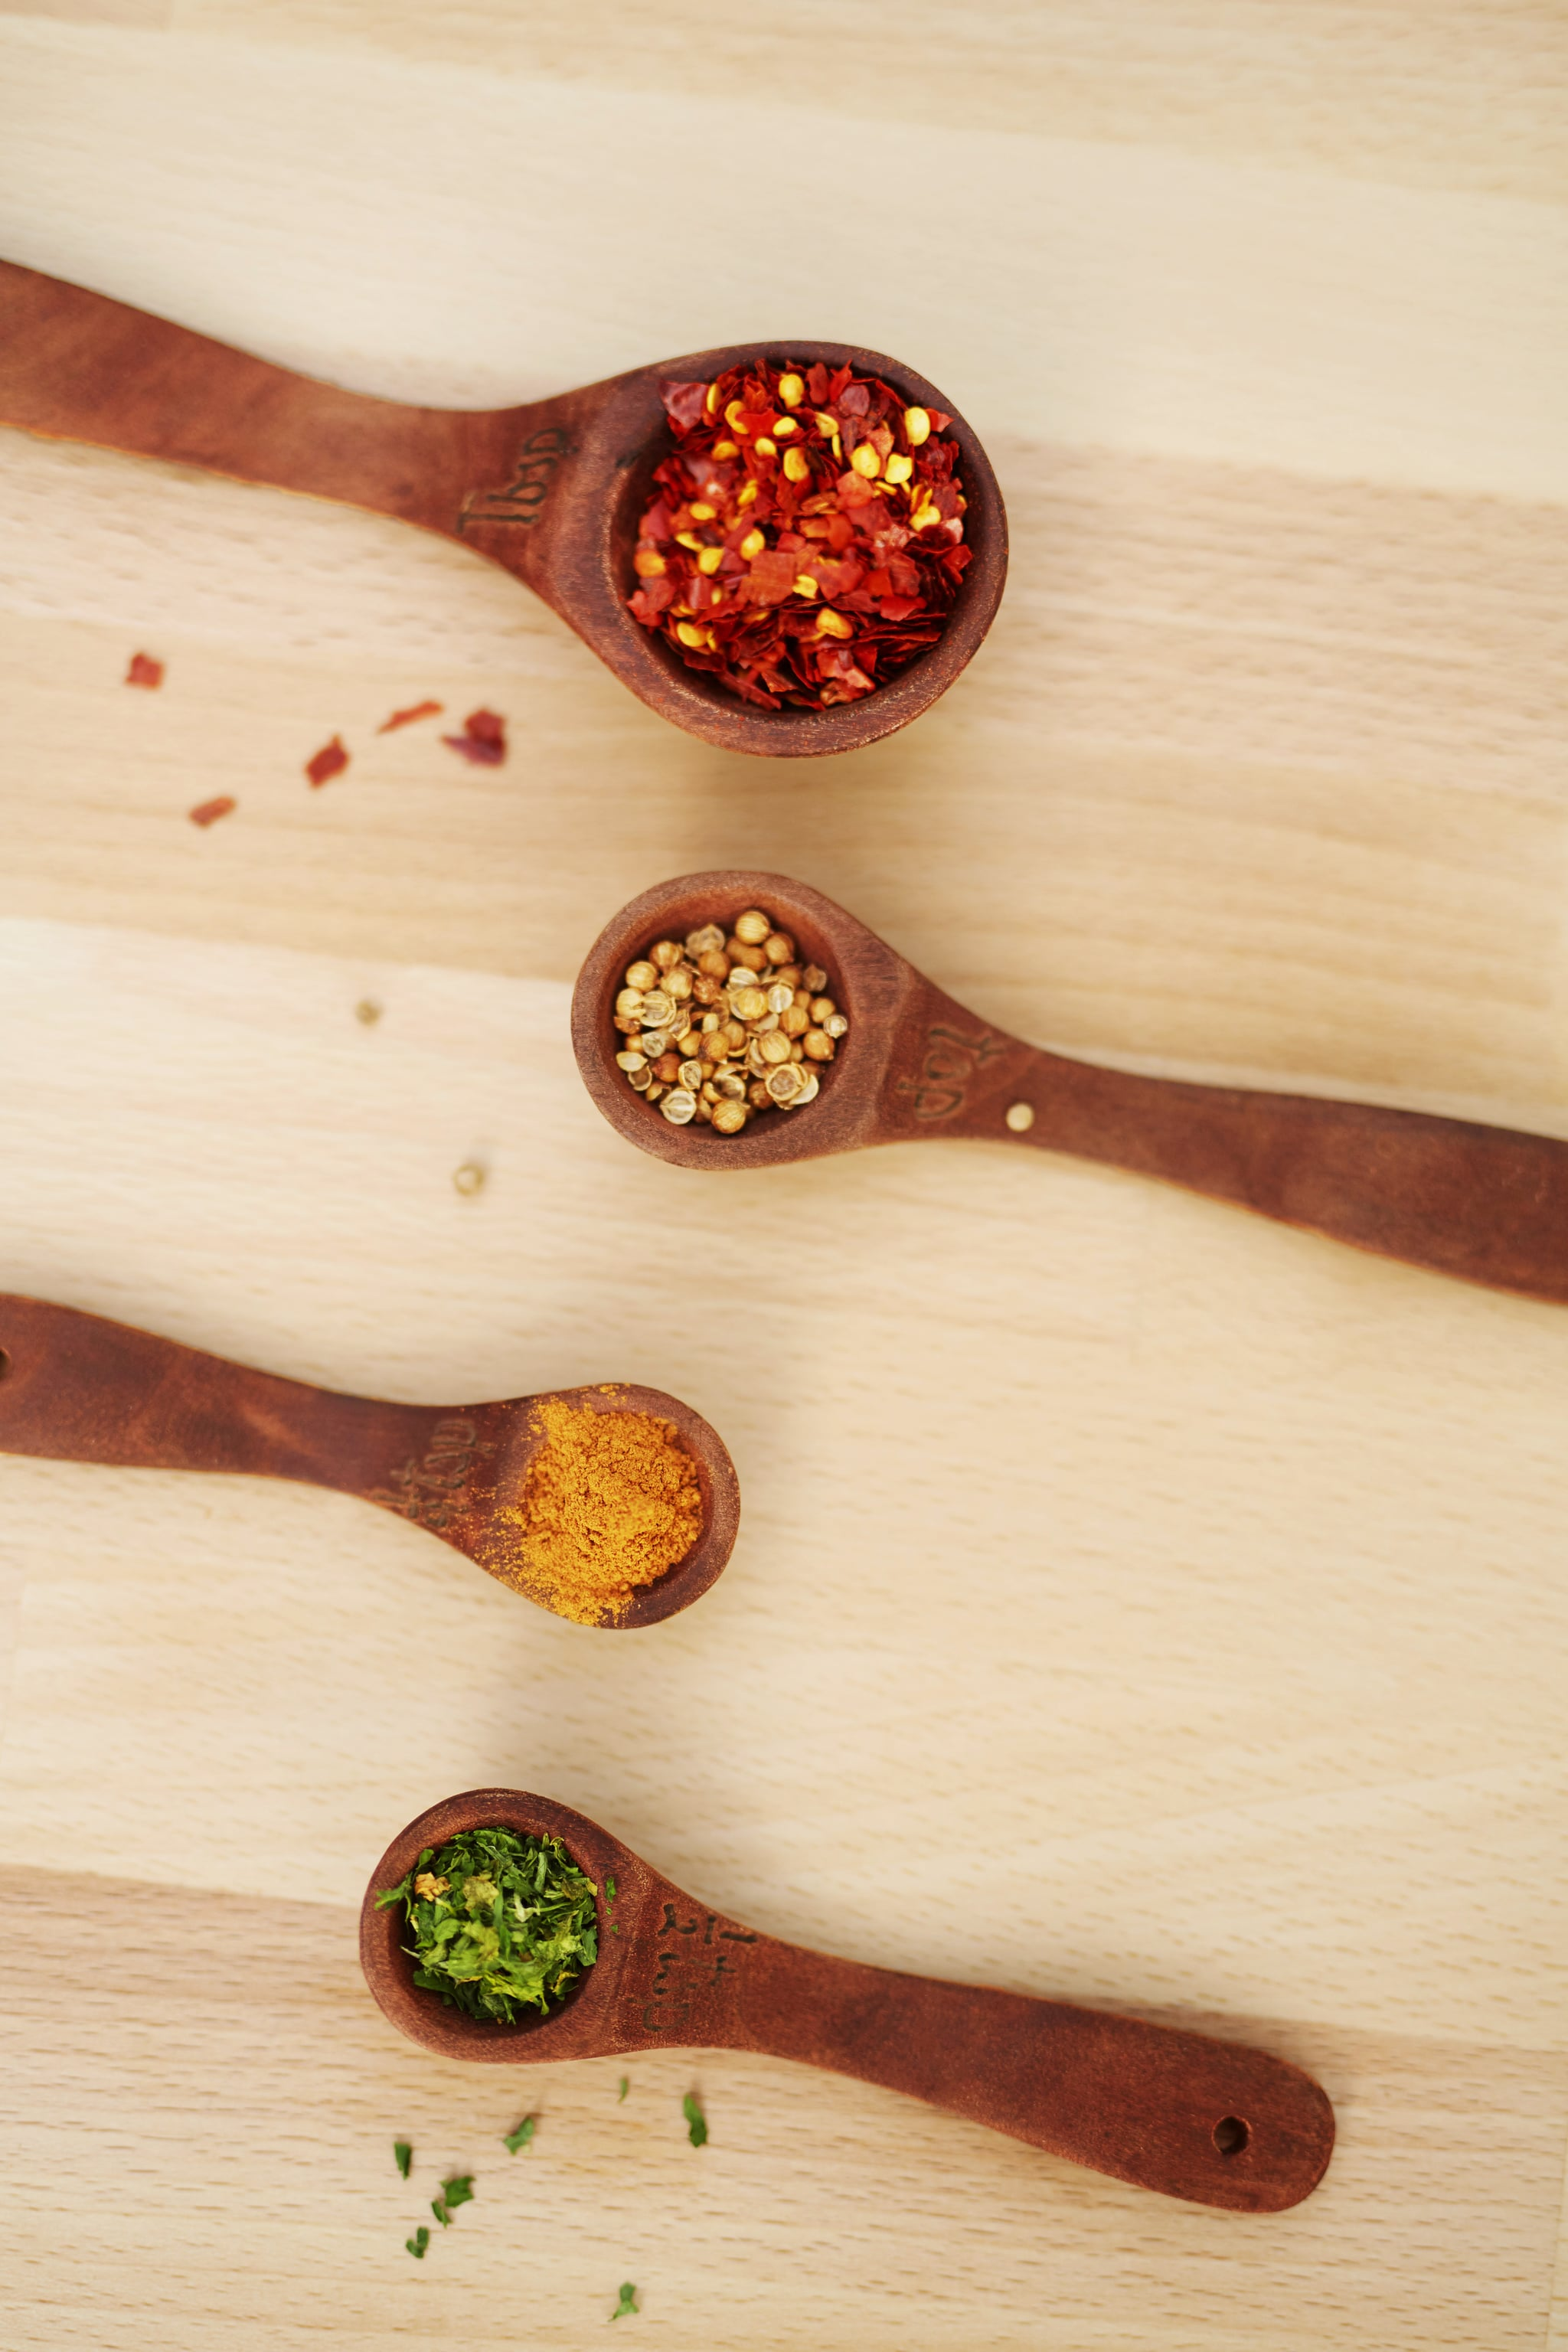 5 Debloating, Skin-Clearing Spices You Need in Your Diet